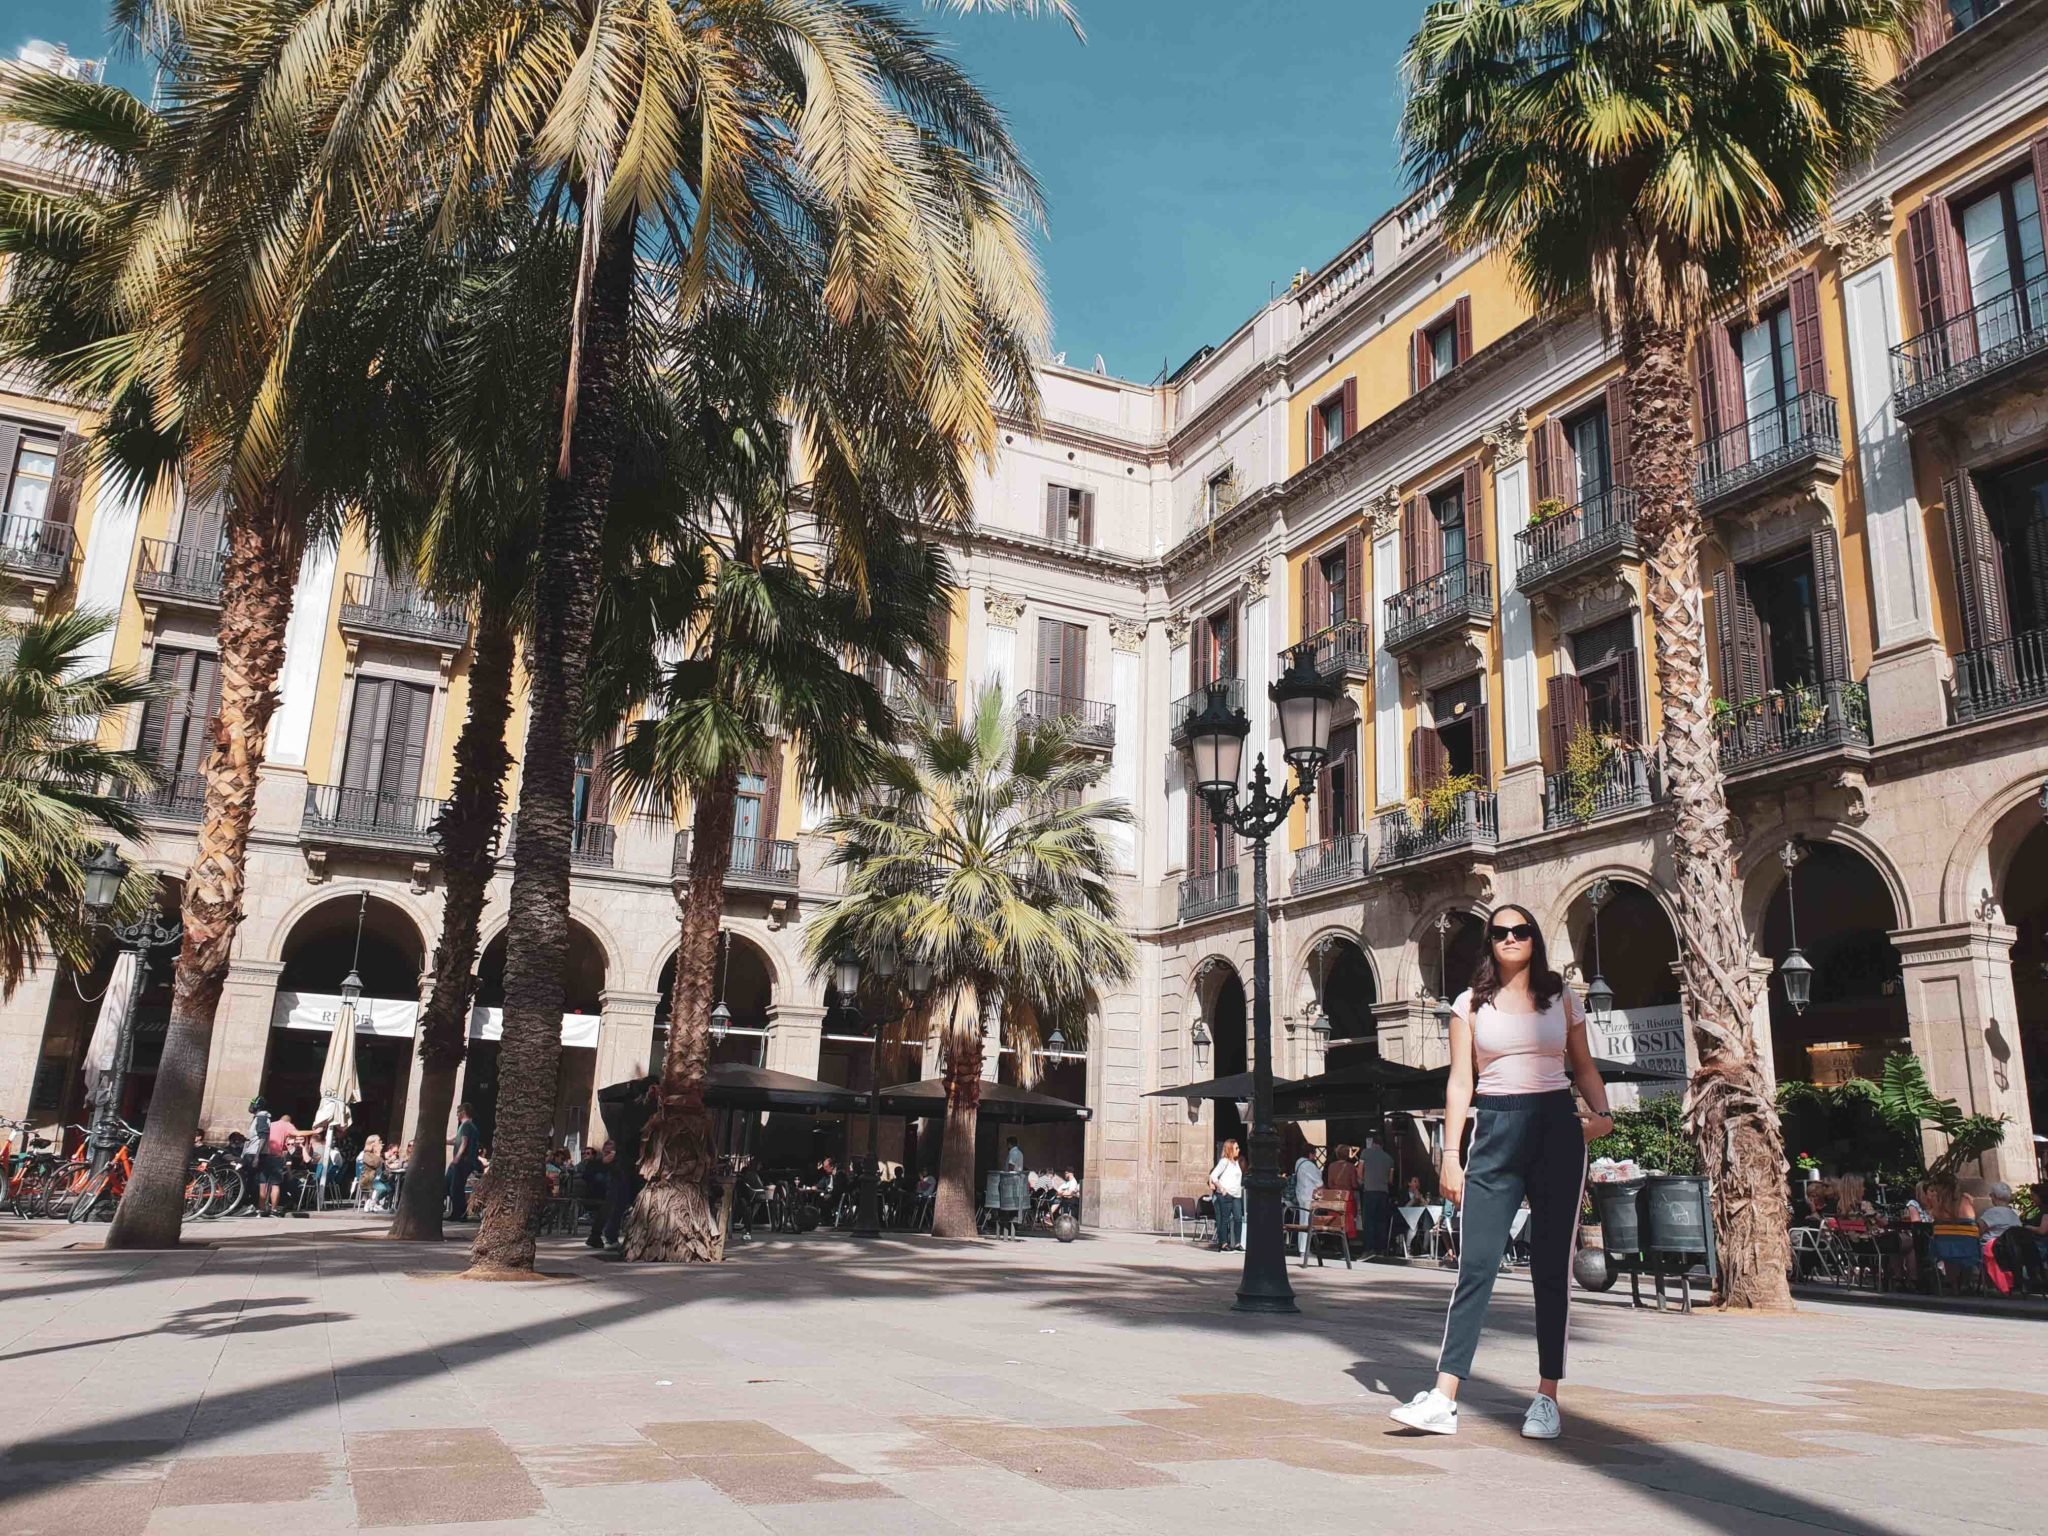 Barcelona travel guide by Michaella and Lina from Bulgarian lifestyle blog Quite a Looker / Placa Reial